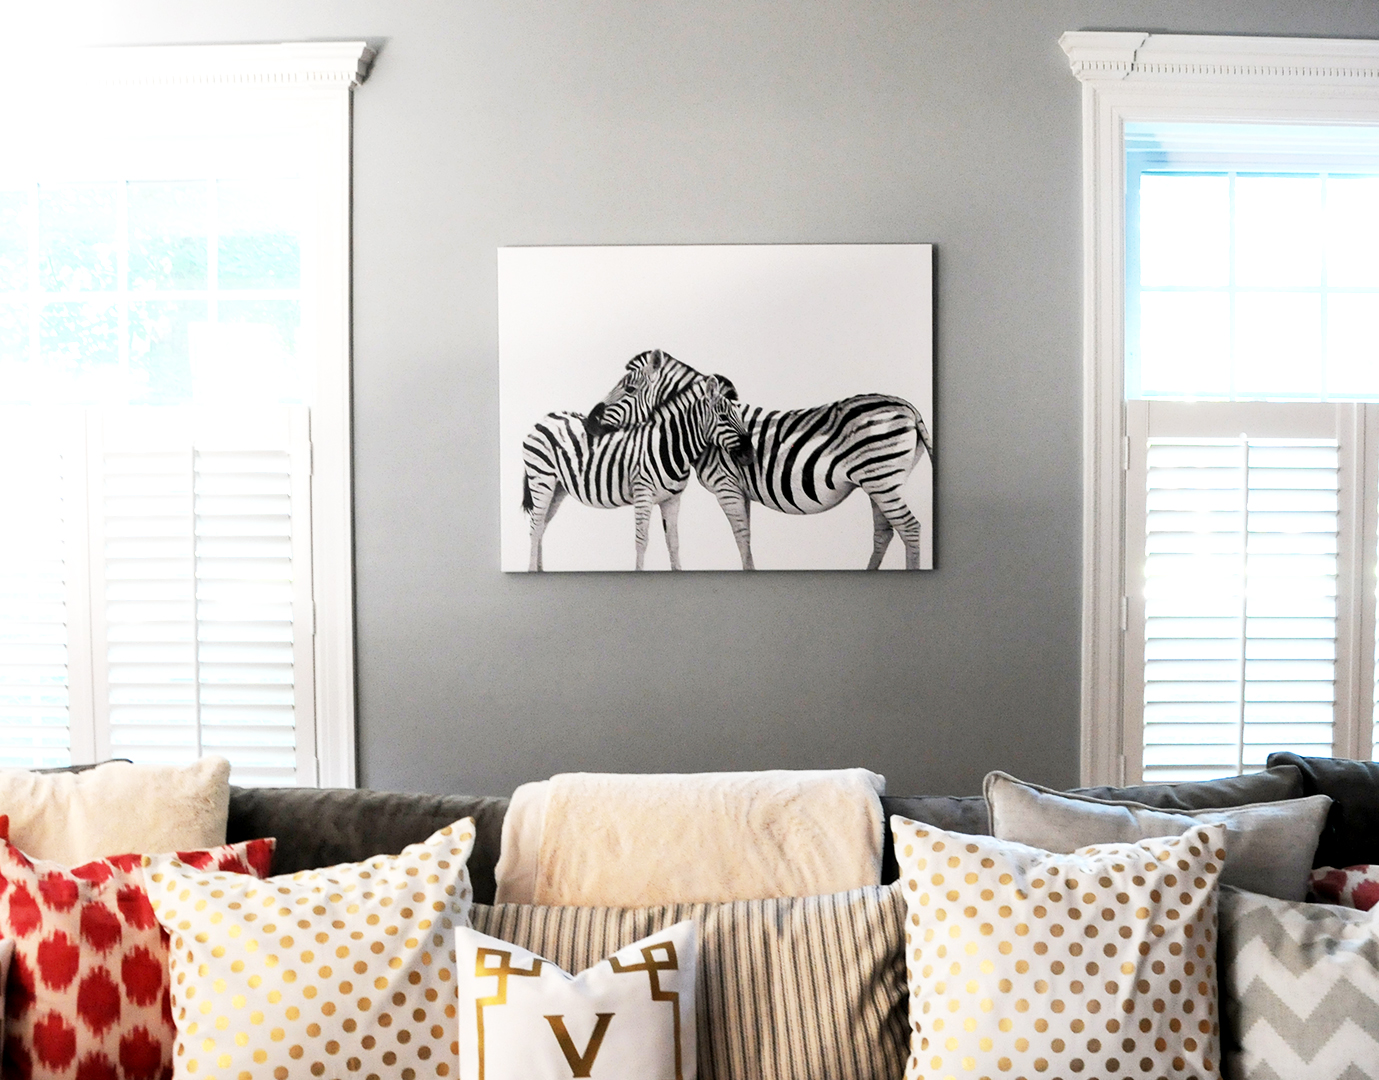 Zebra obsession rsvp paper co zebra canvas rsvp paper co altavistaventures Gallery